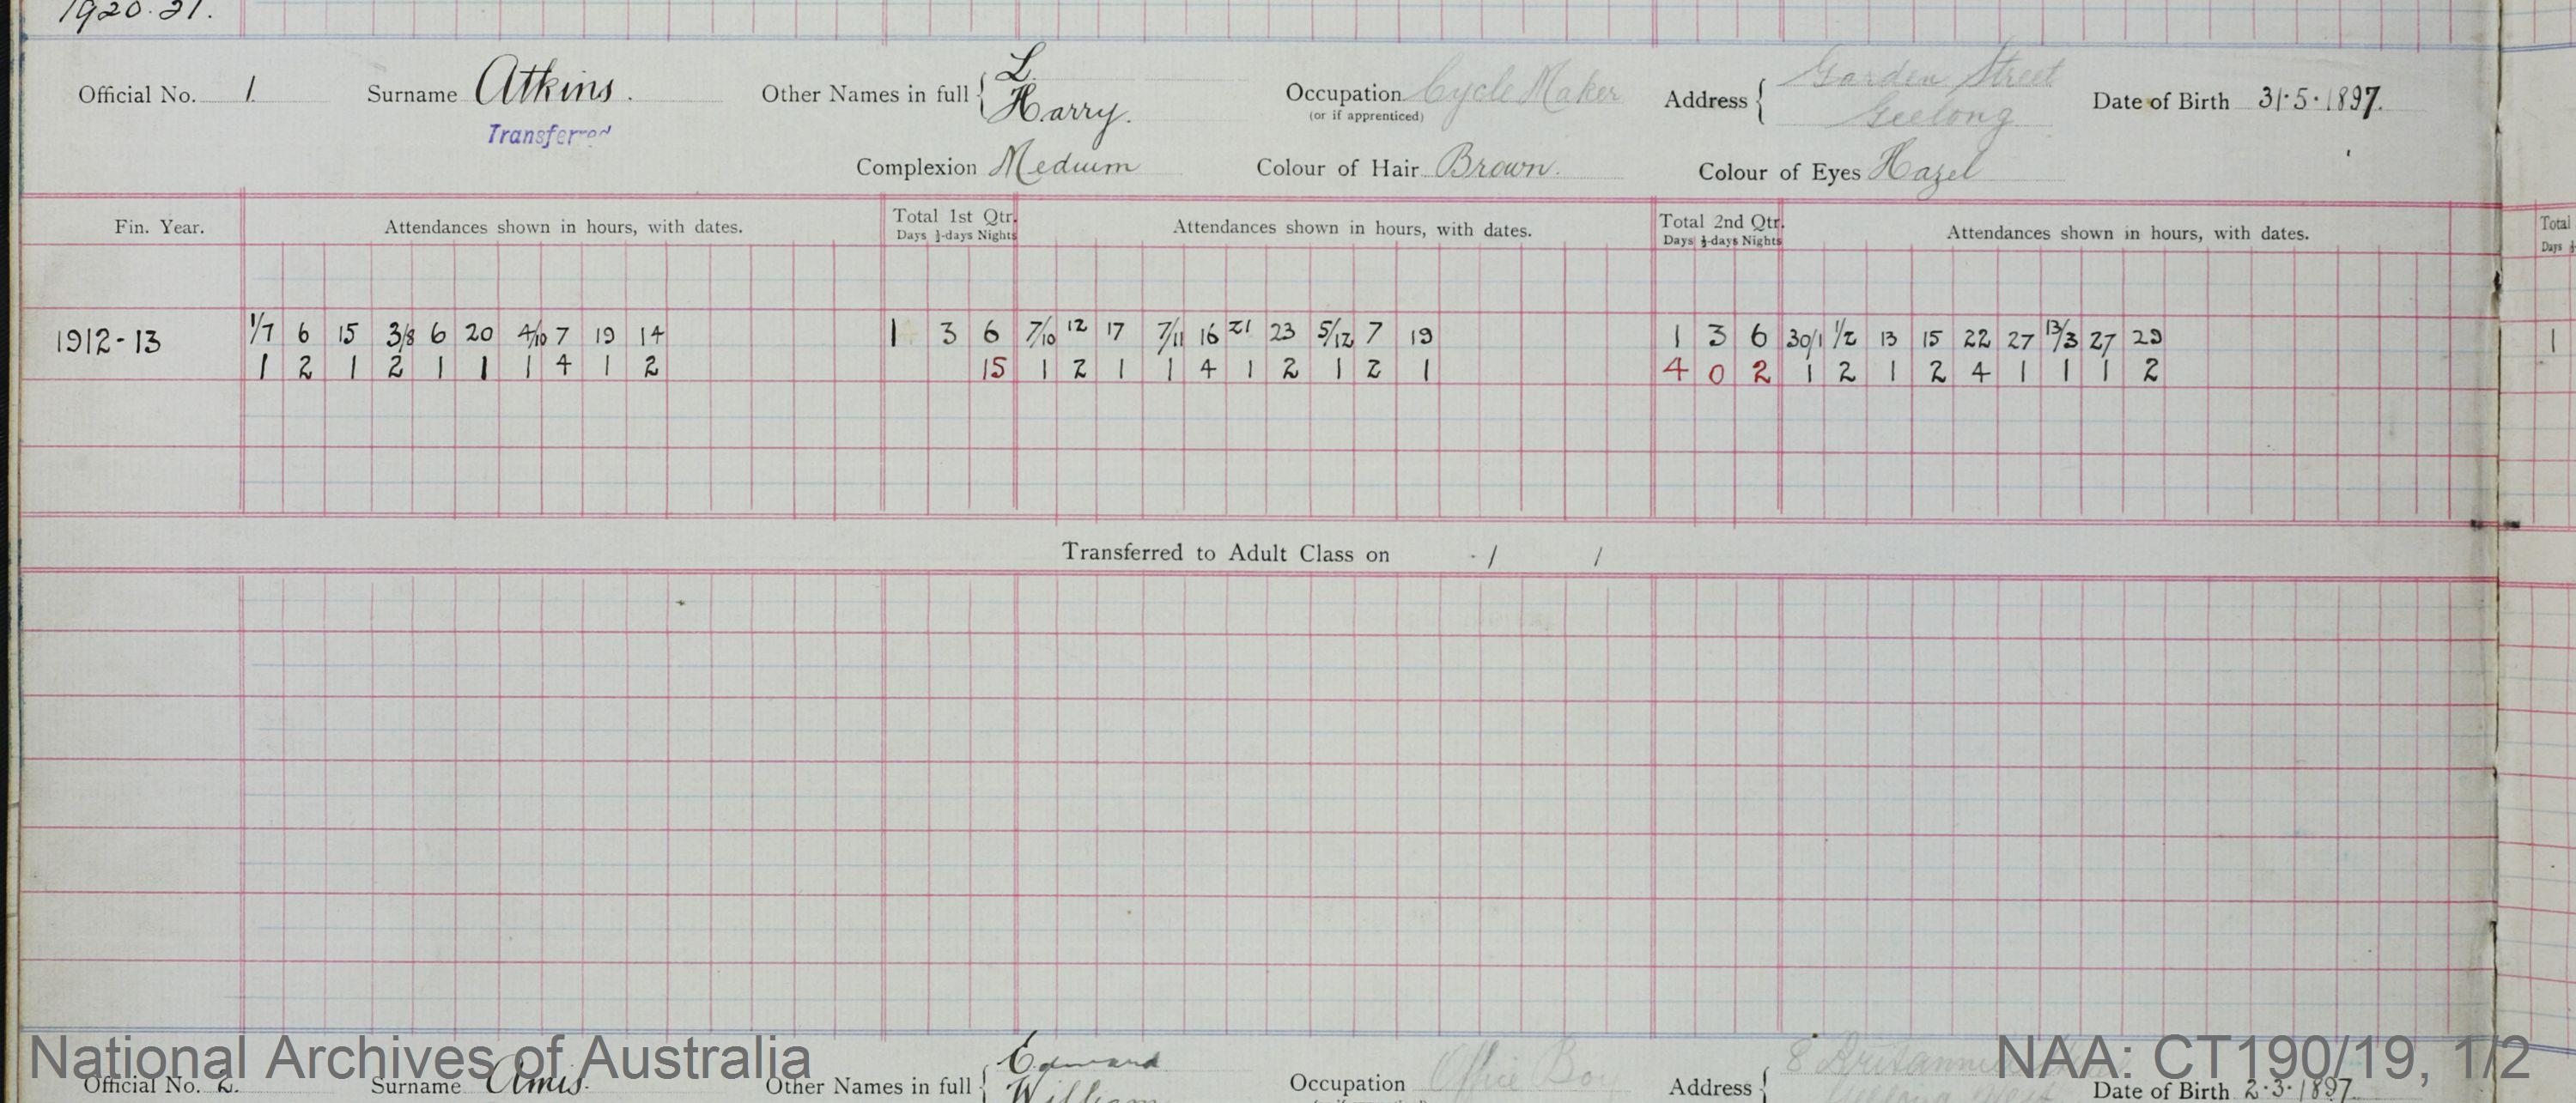 SURNAME - ATKINS;  GIVEN NAME(S) - L Harry;  OFFICIAL NUMBER - 1;  DATE OF BIRTH - 13 May 1897;  PLACE OF BIRTH - [Unknown];  NEXT OF KIN - [Unknown] ;  SERVICE/STATION - Geelong;  REGISTRATION DATE - 1 June 1912